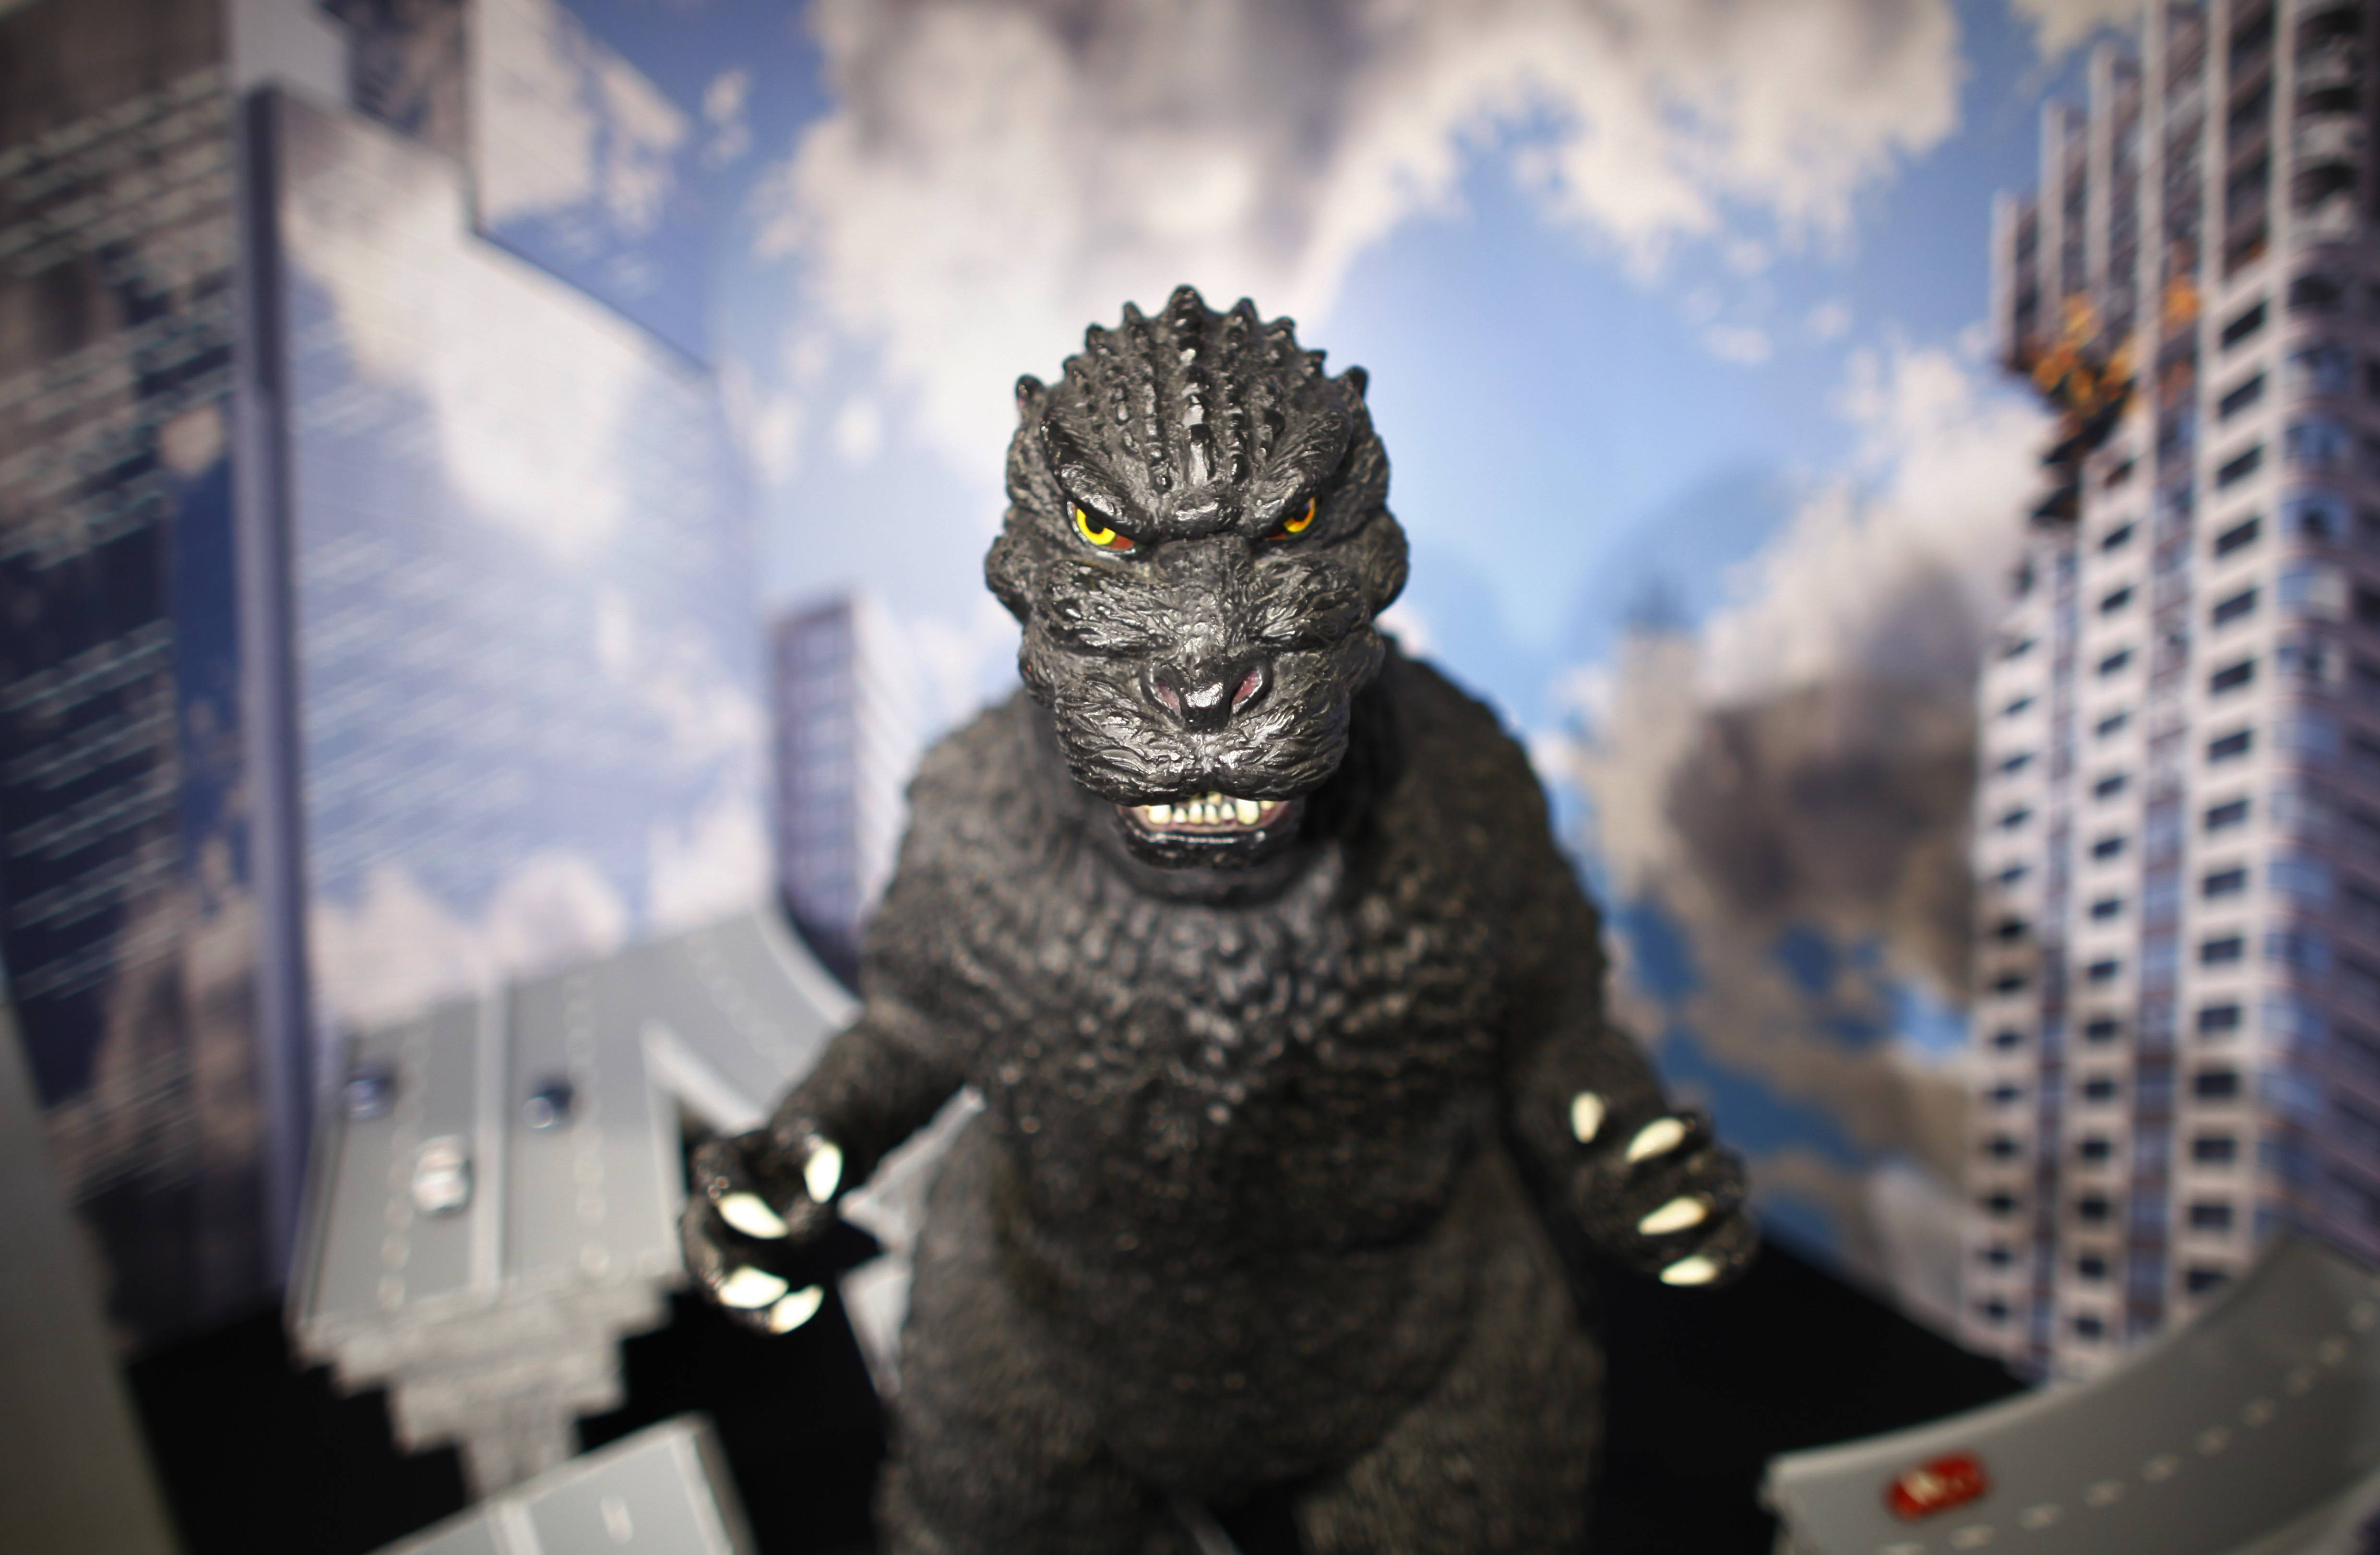 He spews radioactive fire, razes cities and pummels creatures from Earth and beyond, but even Godzilla needs a good lawyer sometimes.